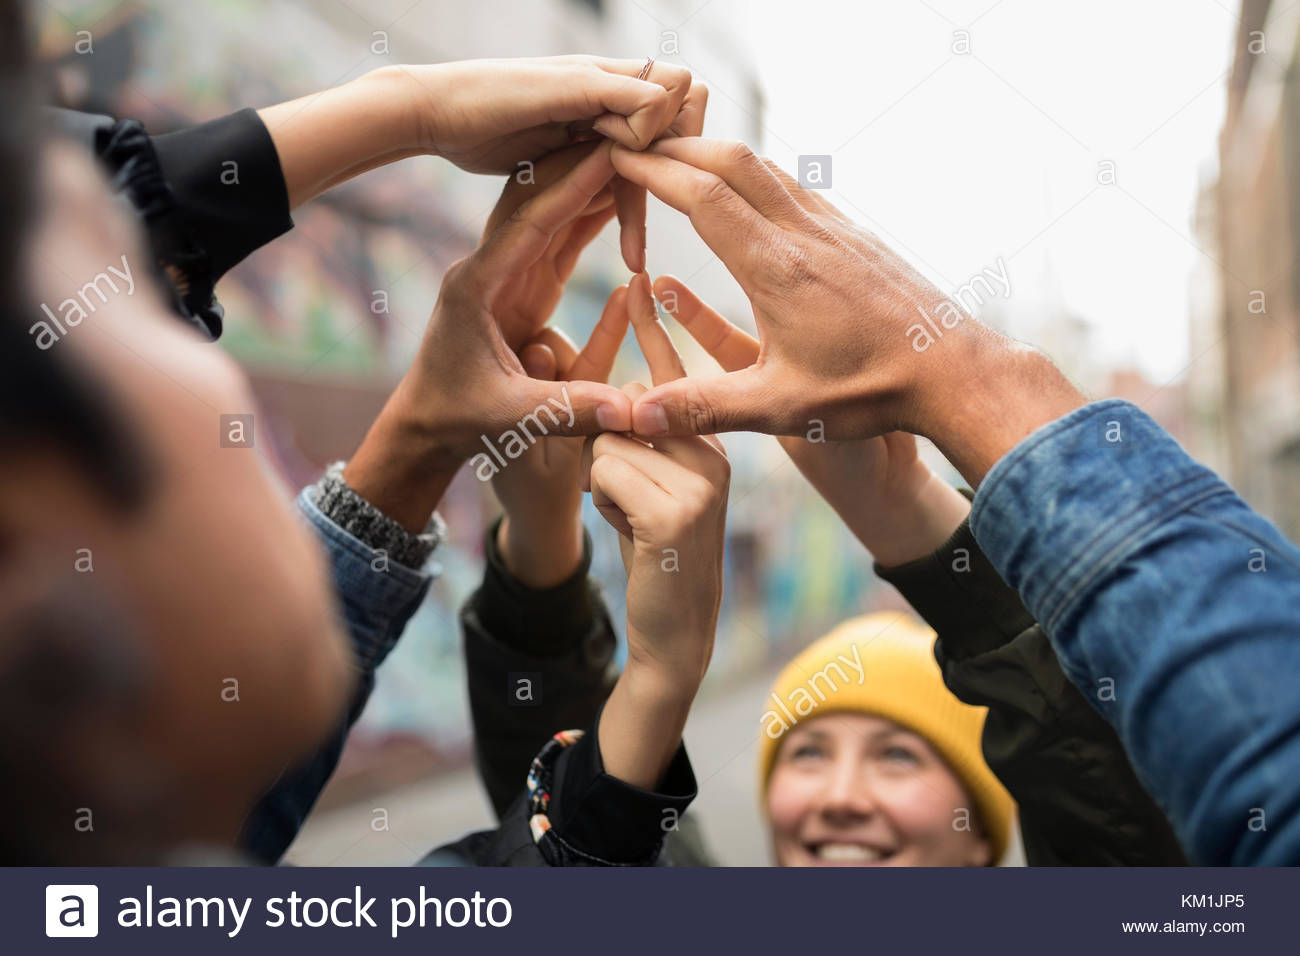 Friends forming peace sign with hands - Stock Image